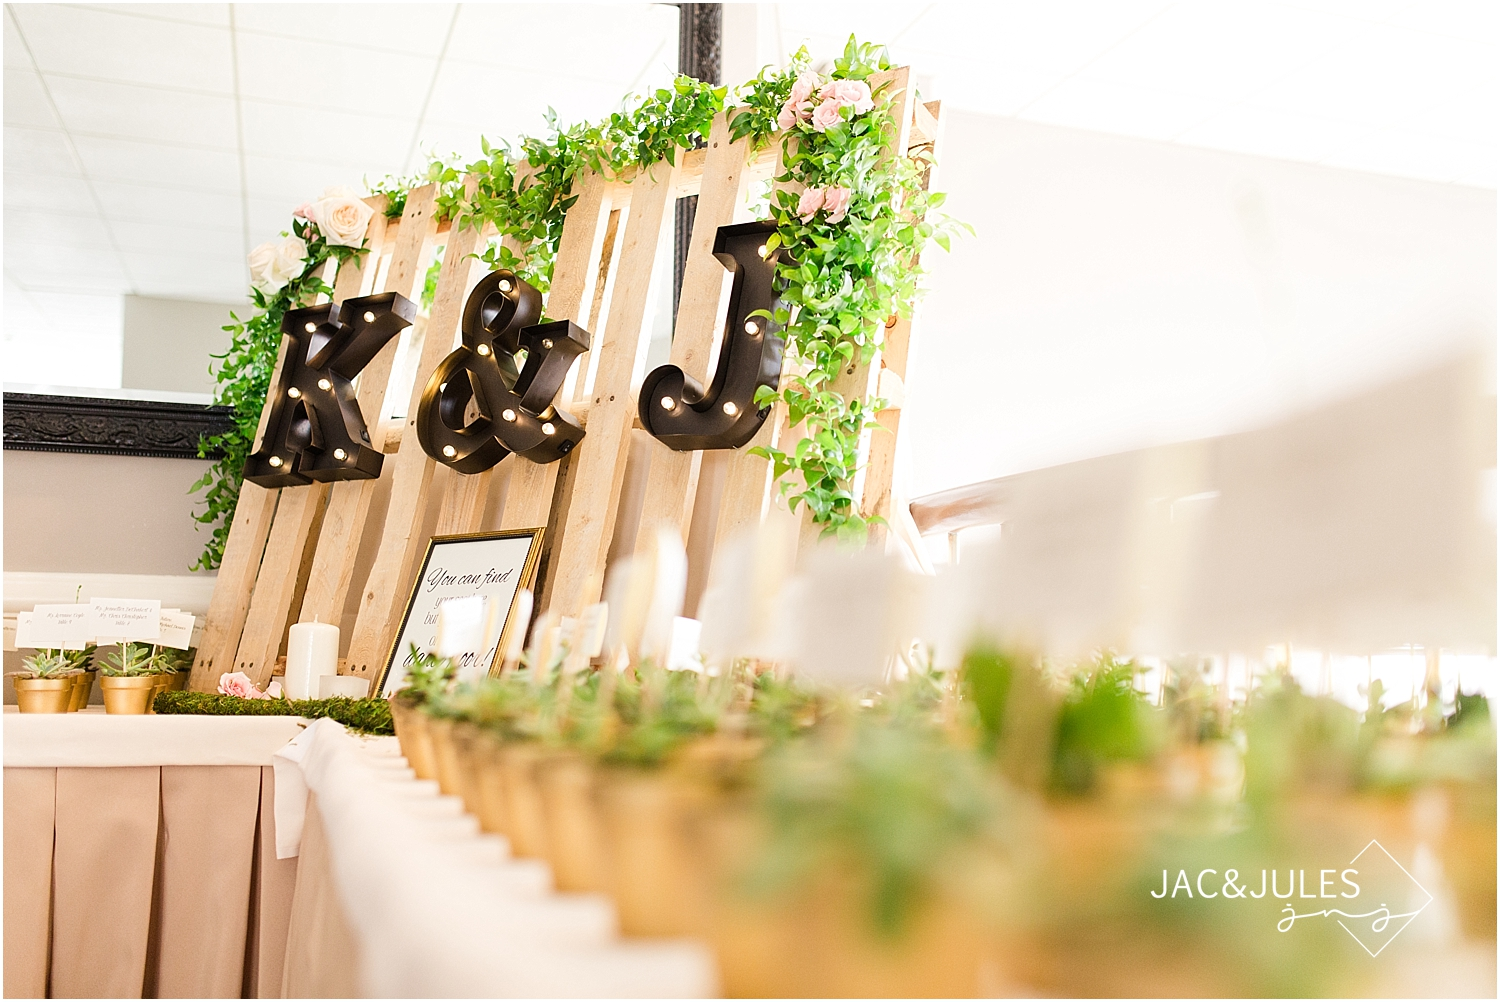 jacnjules photographs rustic wedding details using succulents, palettes and greenery at Oyster Point